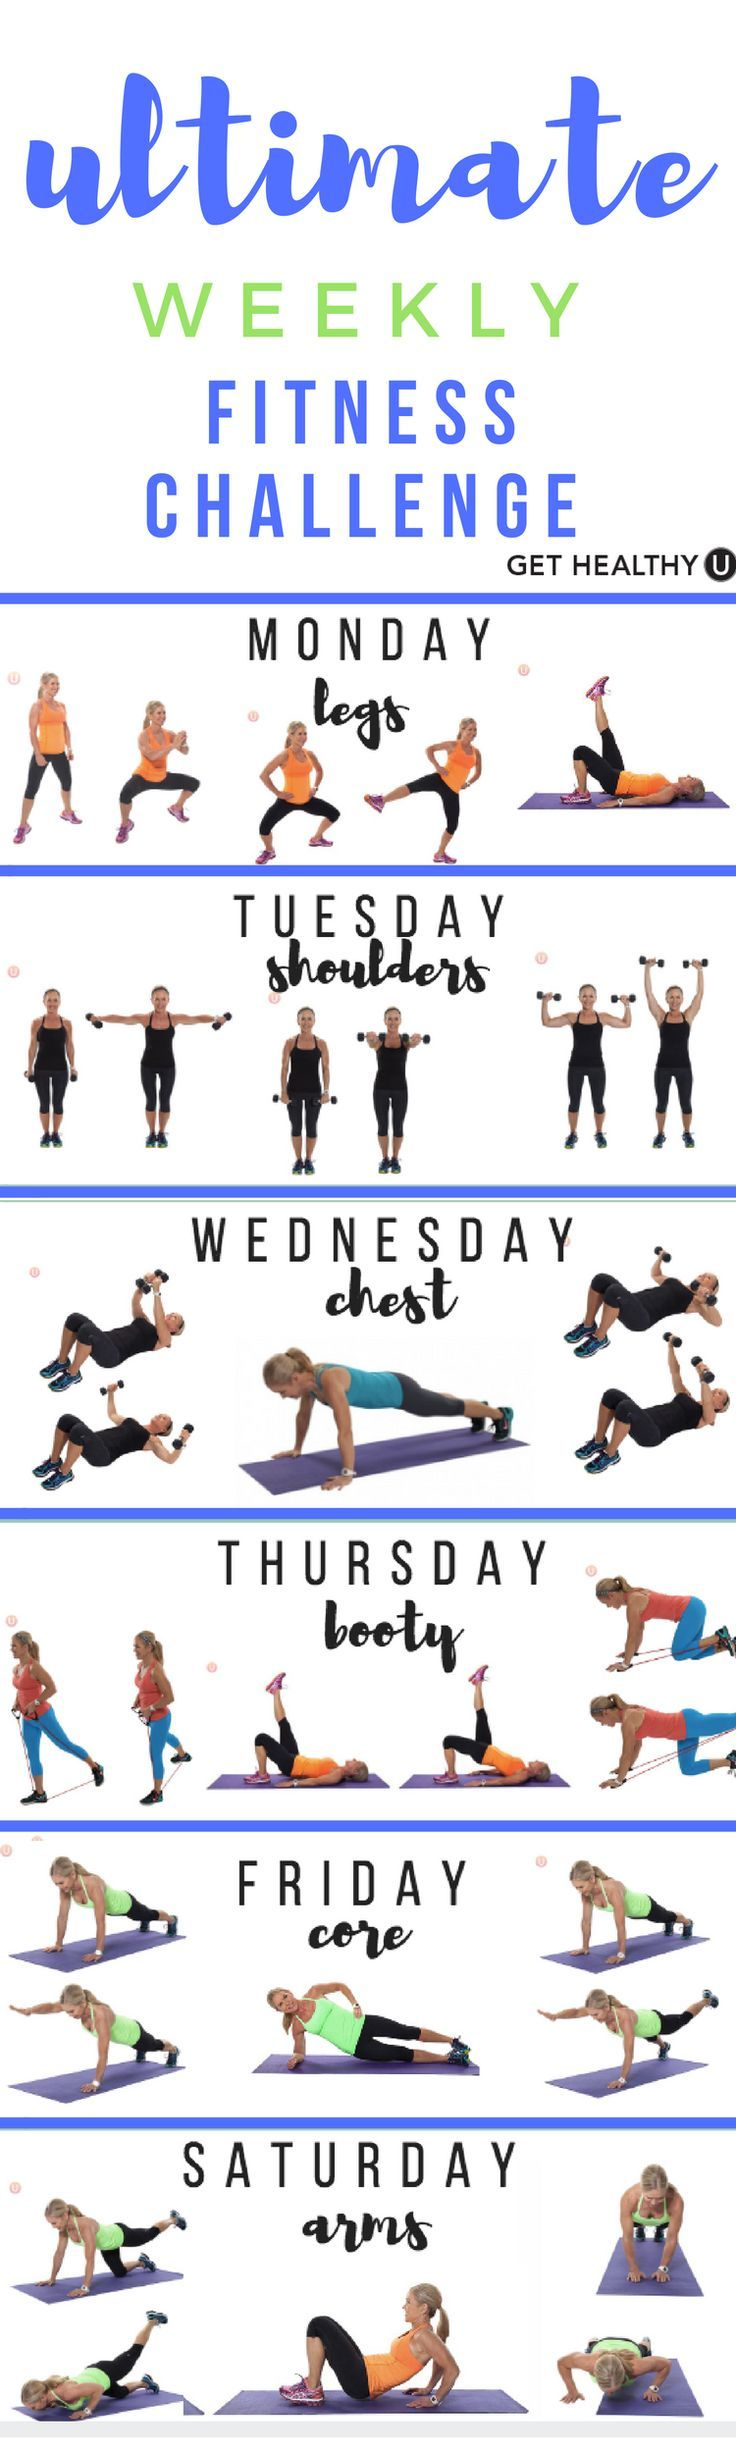 Check out our Ultimate Weekly Fitness Challenge! We've come up with a Weekly Fitness Challenge to keep your body guessing, making it work harder to adapt to what's new. And when your body works harder, you'll start seeing results!